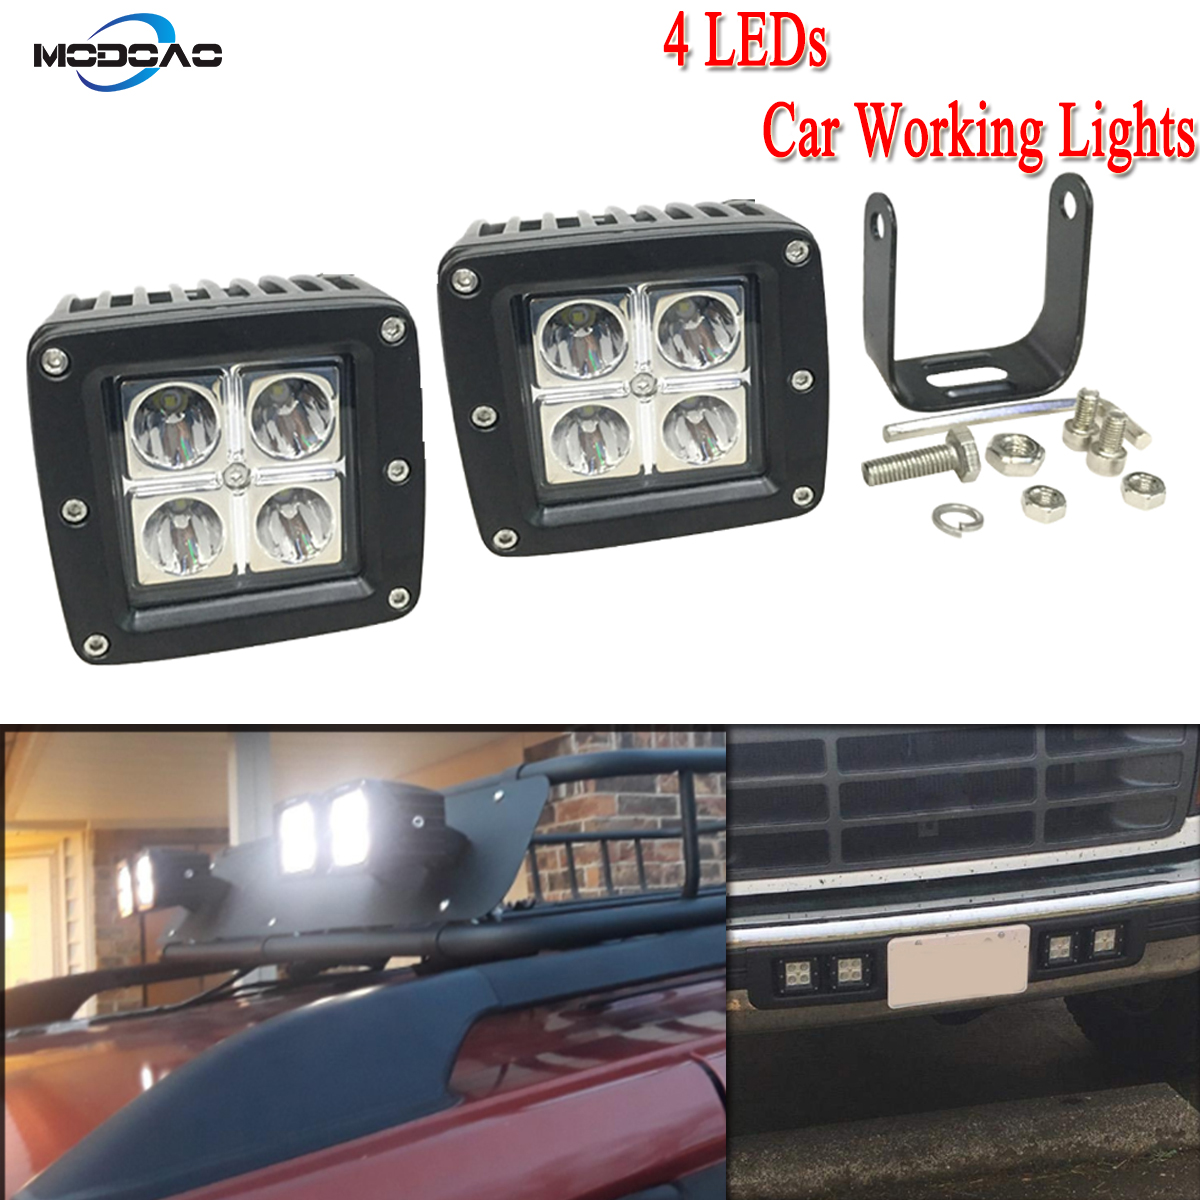 2- Pack 4 LEDs High Power Vehicle Working Lights LED Light Bar Trucks Square Car Lights for ATV UTV SUVs